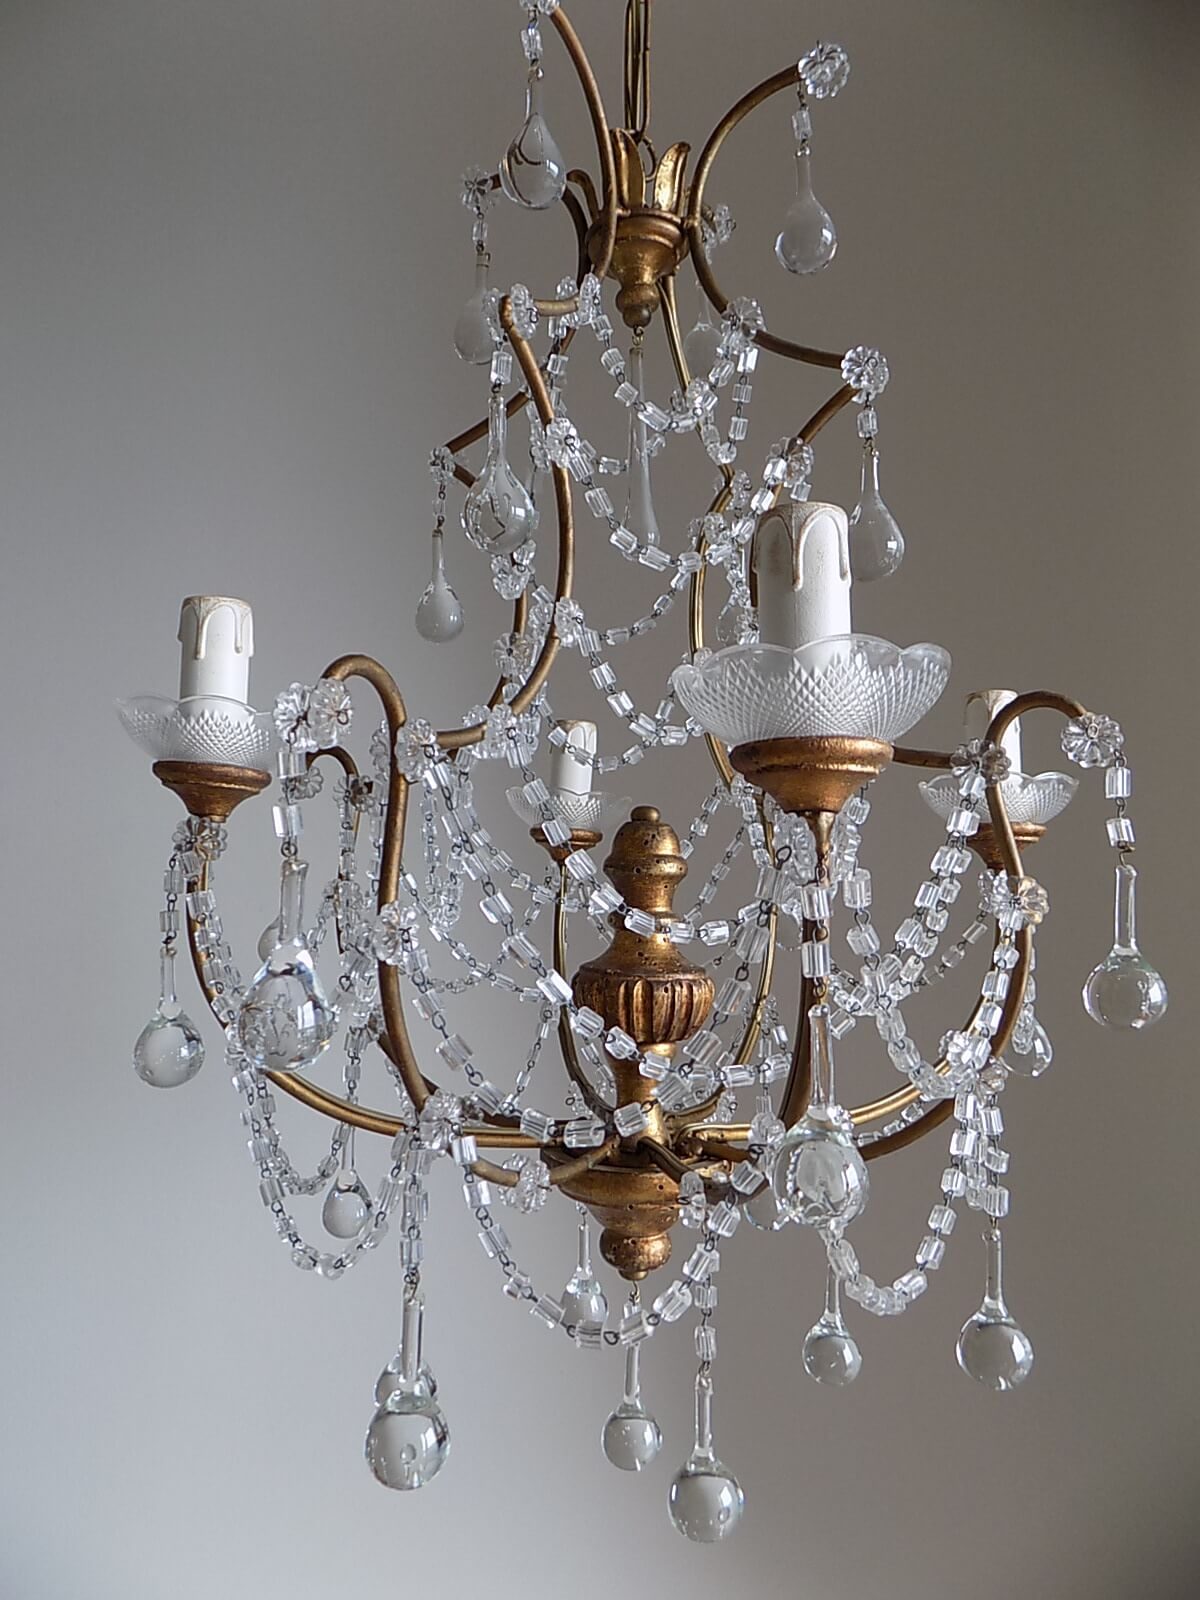 1920 italian crystal chandelier with gilded wood center body lightbox aloadofball Image collections